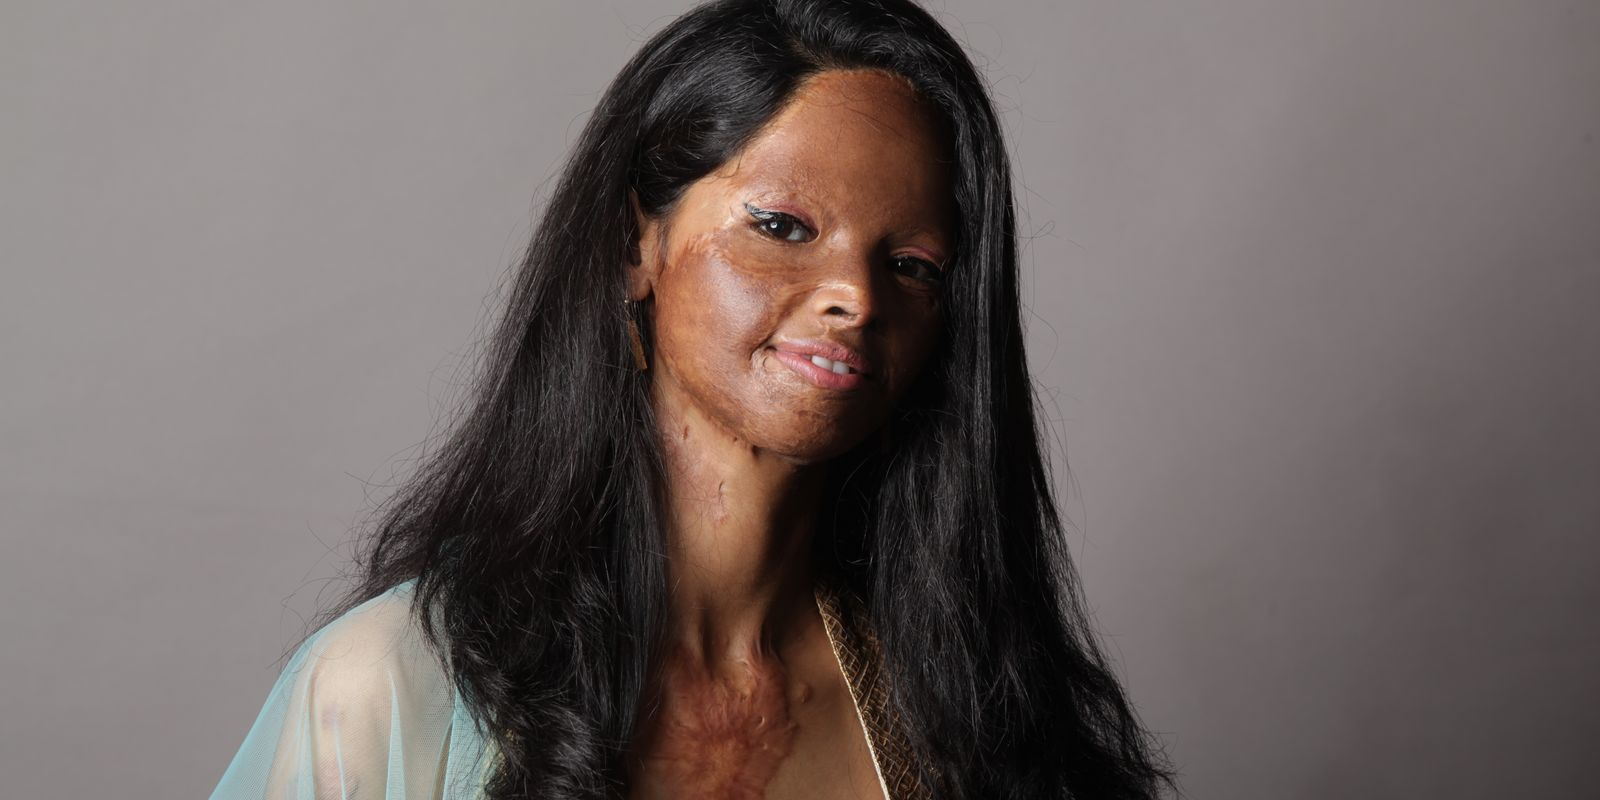 Young girl with long dark hair smiling with some burns on her face - Laxmi Agarwal